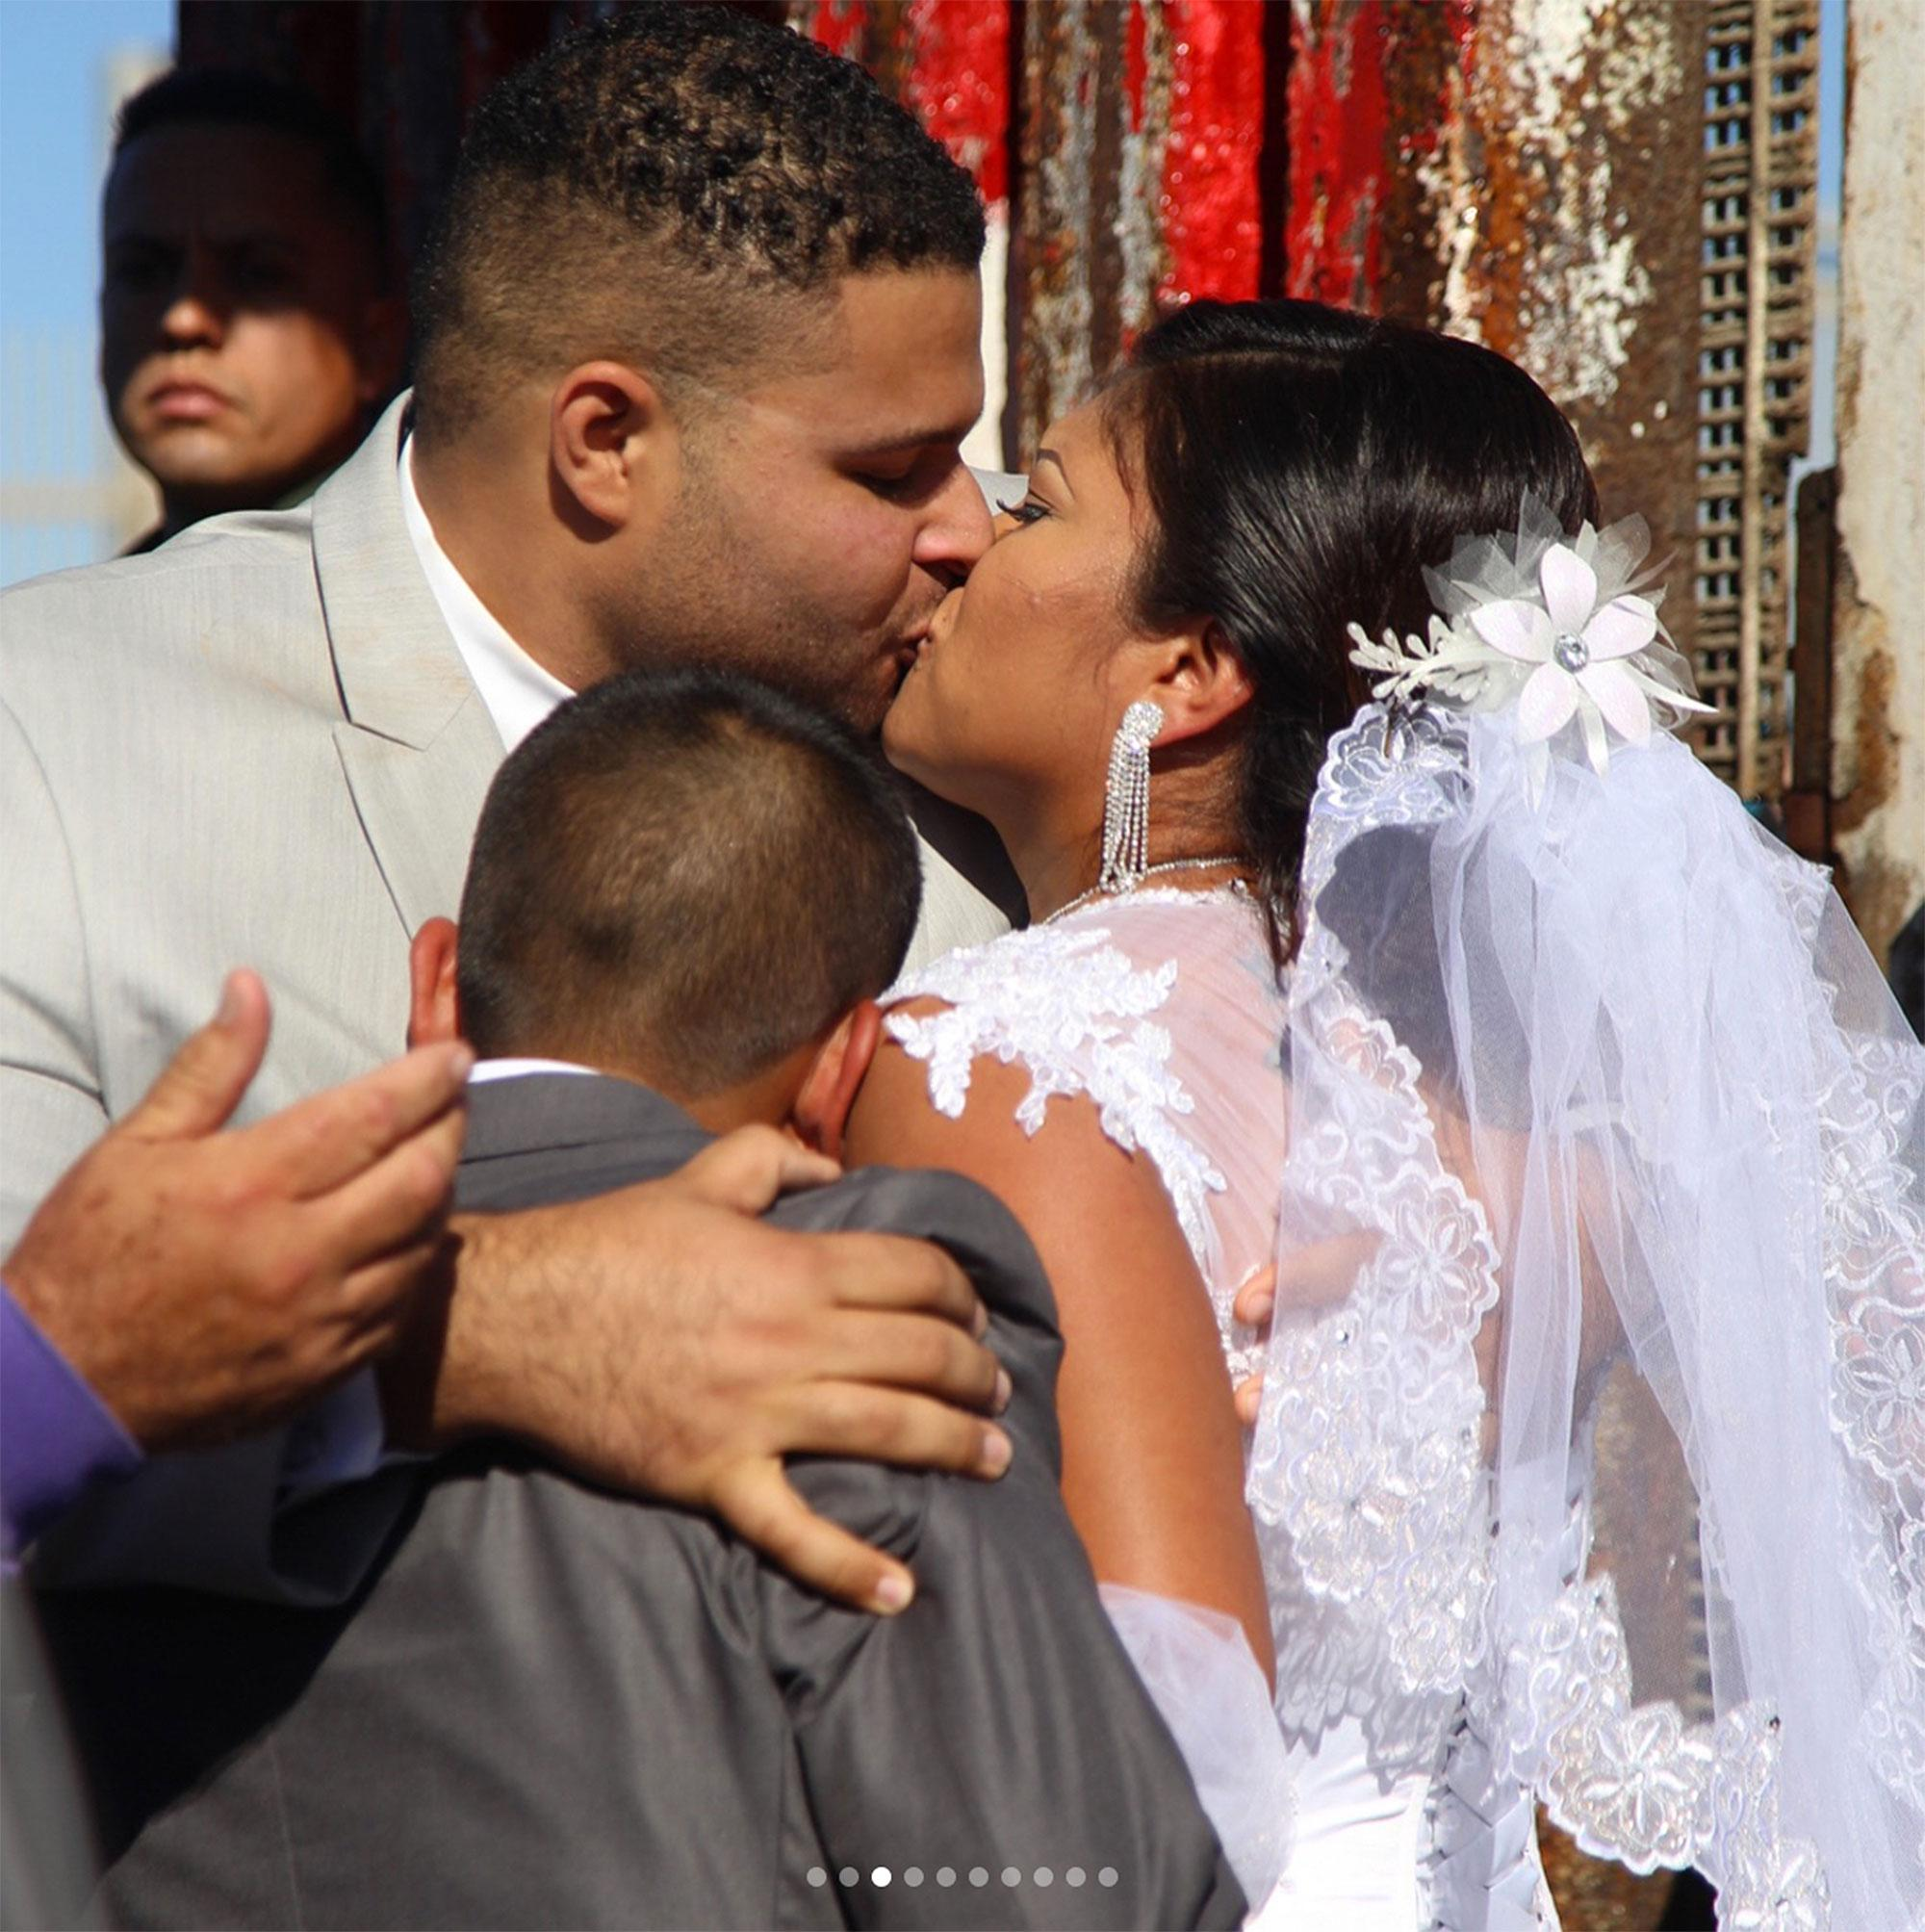 U.S. Man Marries Mexican Wife in Cross-Border Ceremony as ...